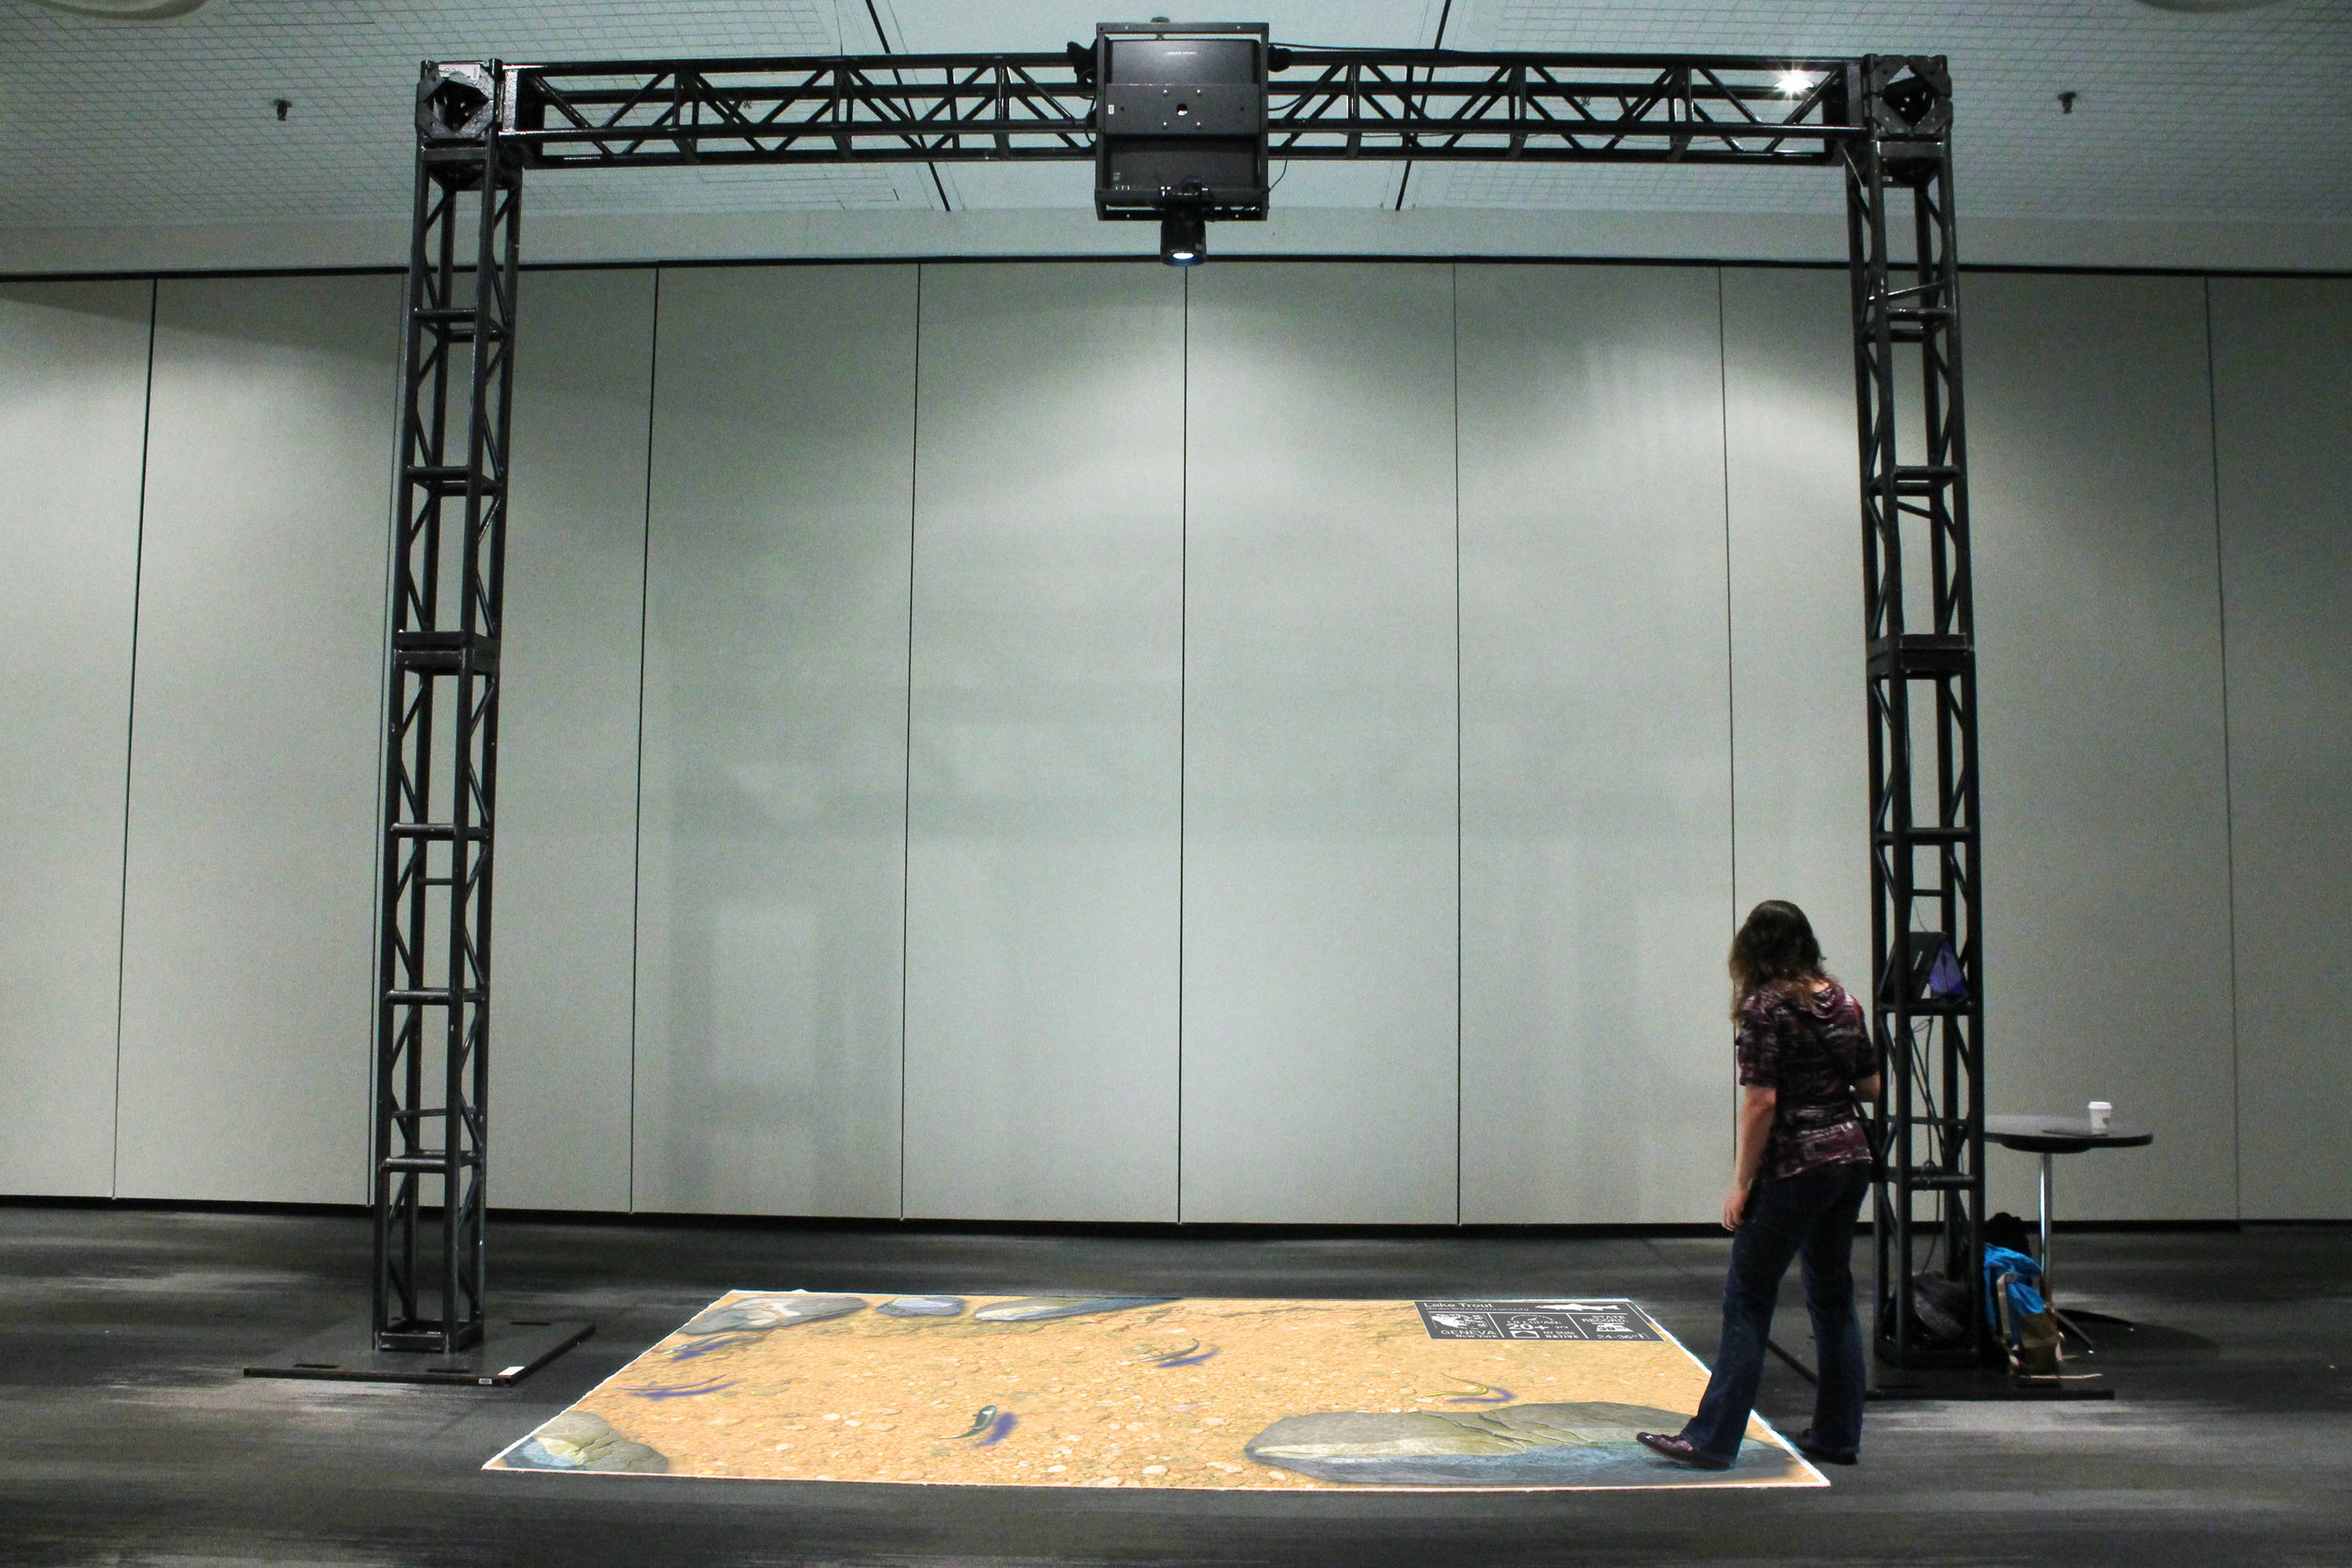 Interactive educational floor at the Javits Center in NYC using a 5000 lumen projector on an arch truss mount. (Lumo Play)